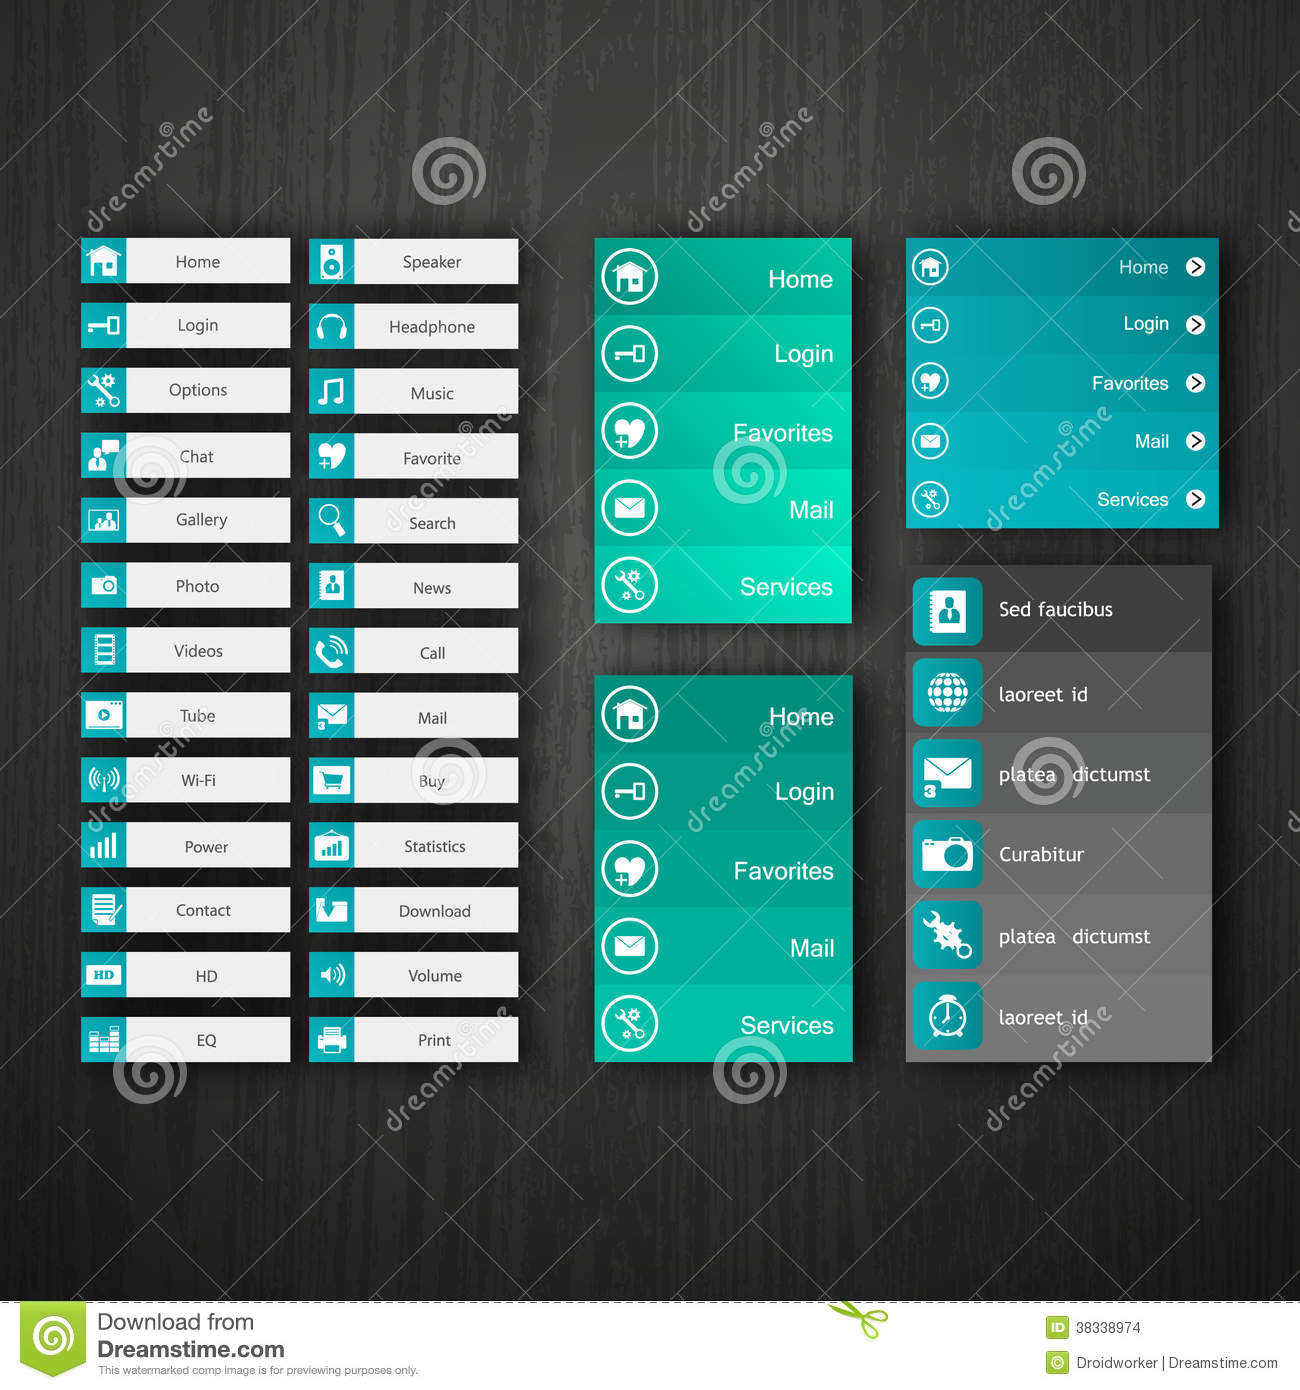 Flat web design elements buttons icons templates for website flat web design elements buttons icons templates for website ccuart Images